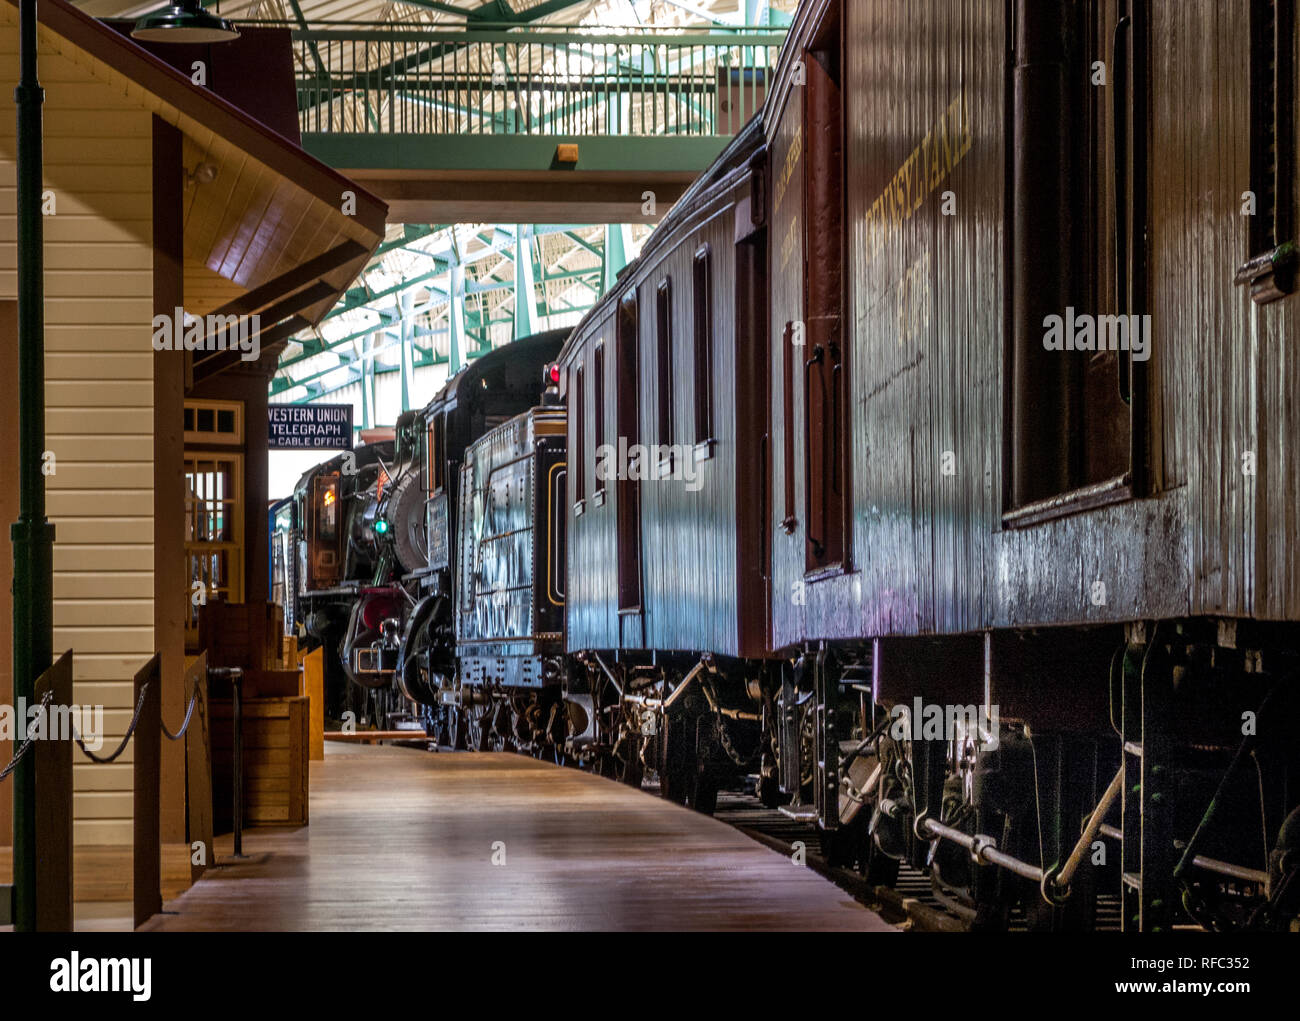 ready to depart - Stock Image